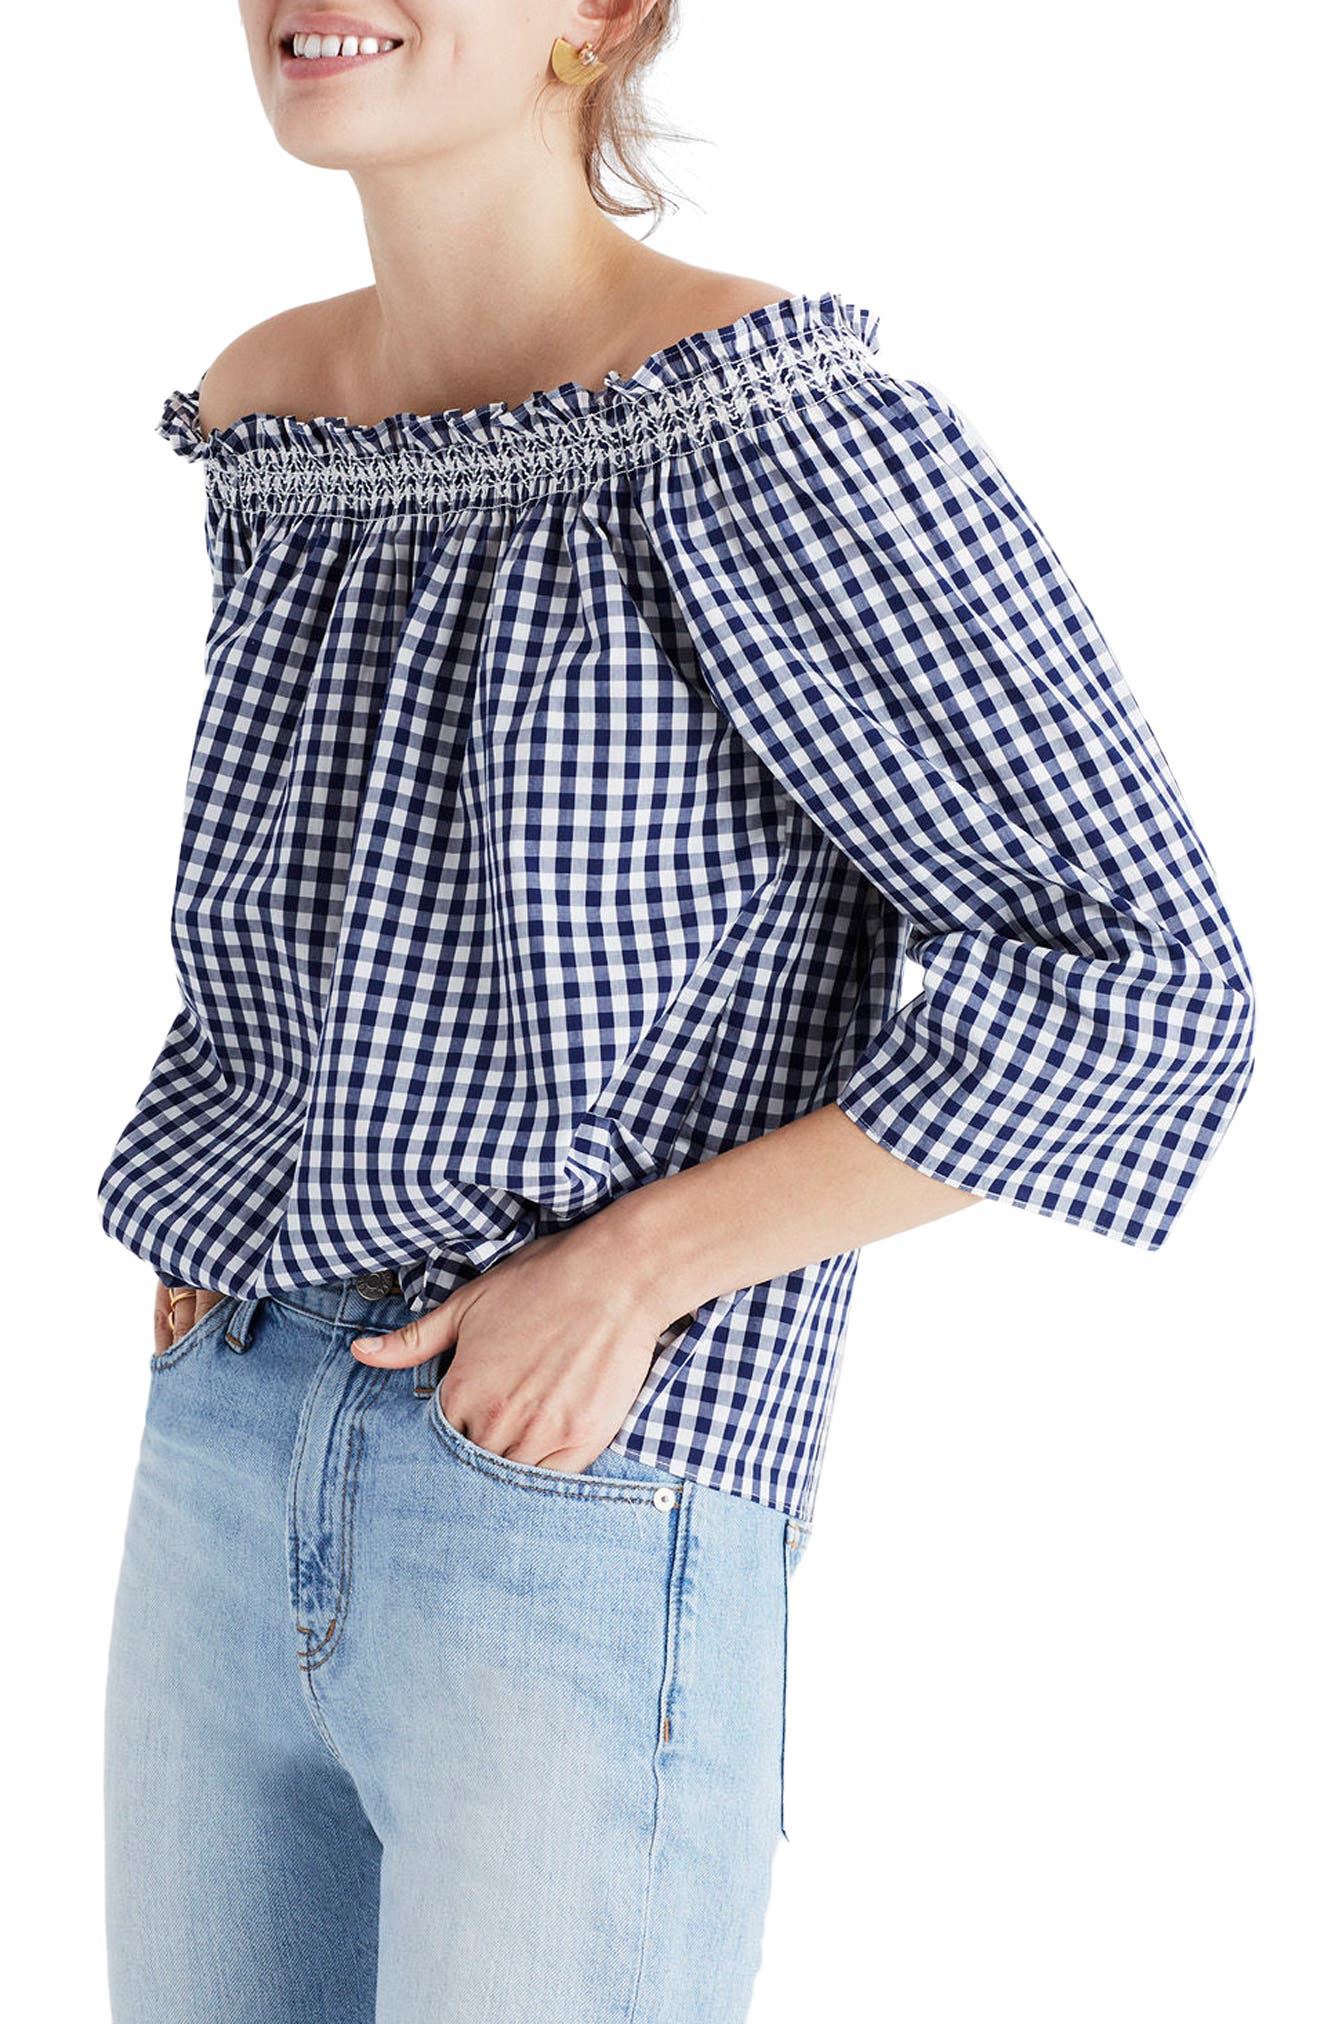 Alternate Image 1 Selected - Madewell Smocked Gingham Off the Shoulder Top